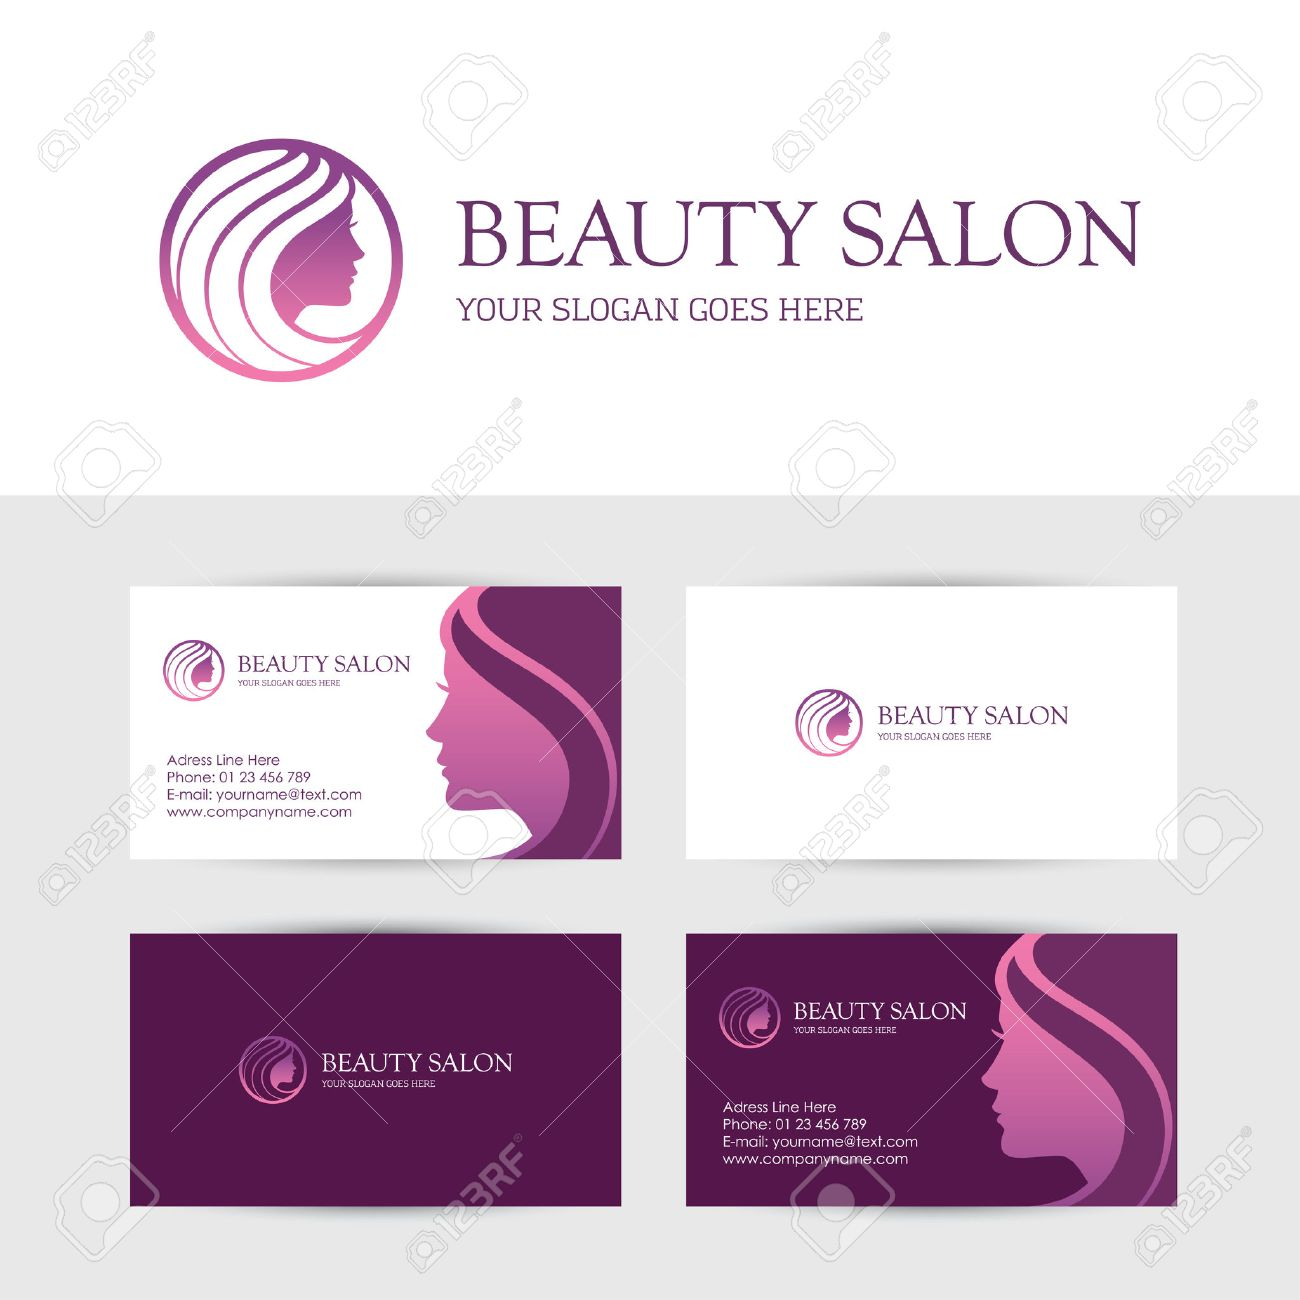 Business card design template for beauty or hair salon spa business card design template for beauty or hair salon spa cosmetics makeup wajeb Choice Image